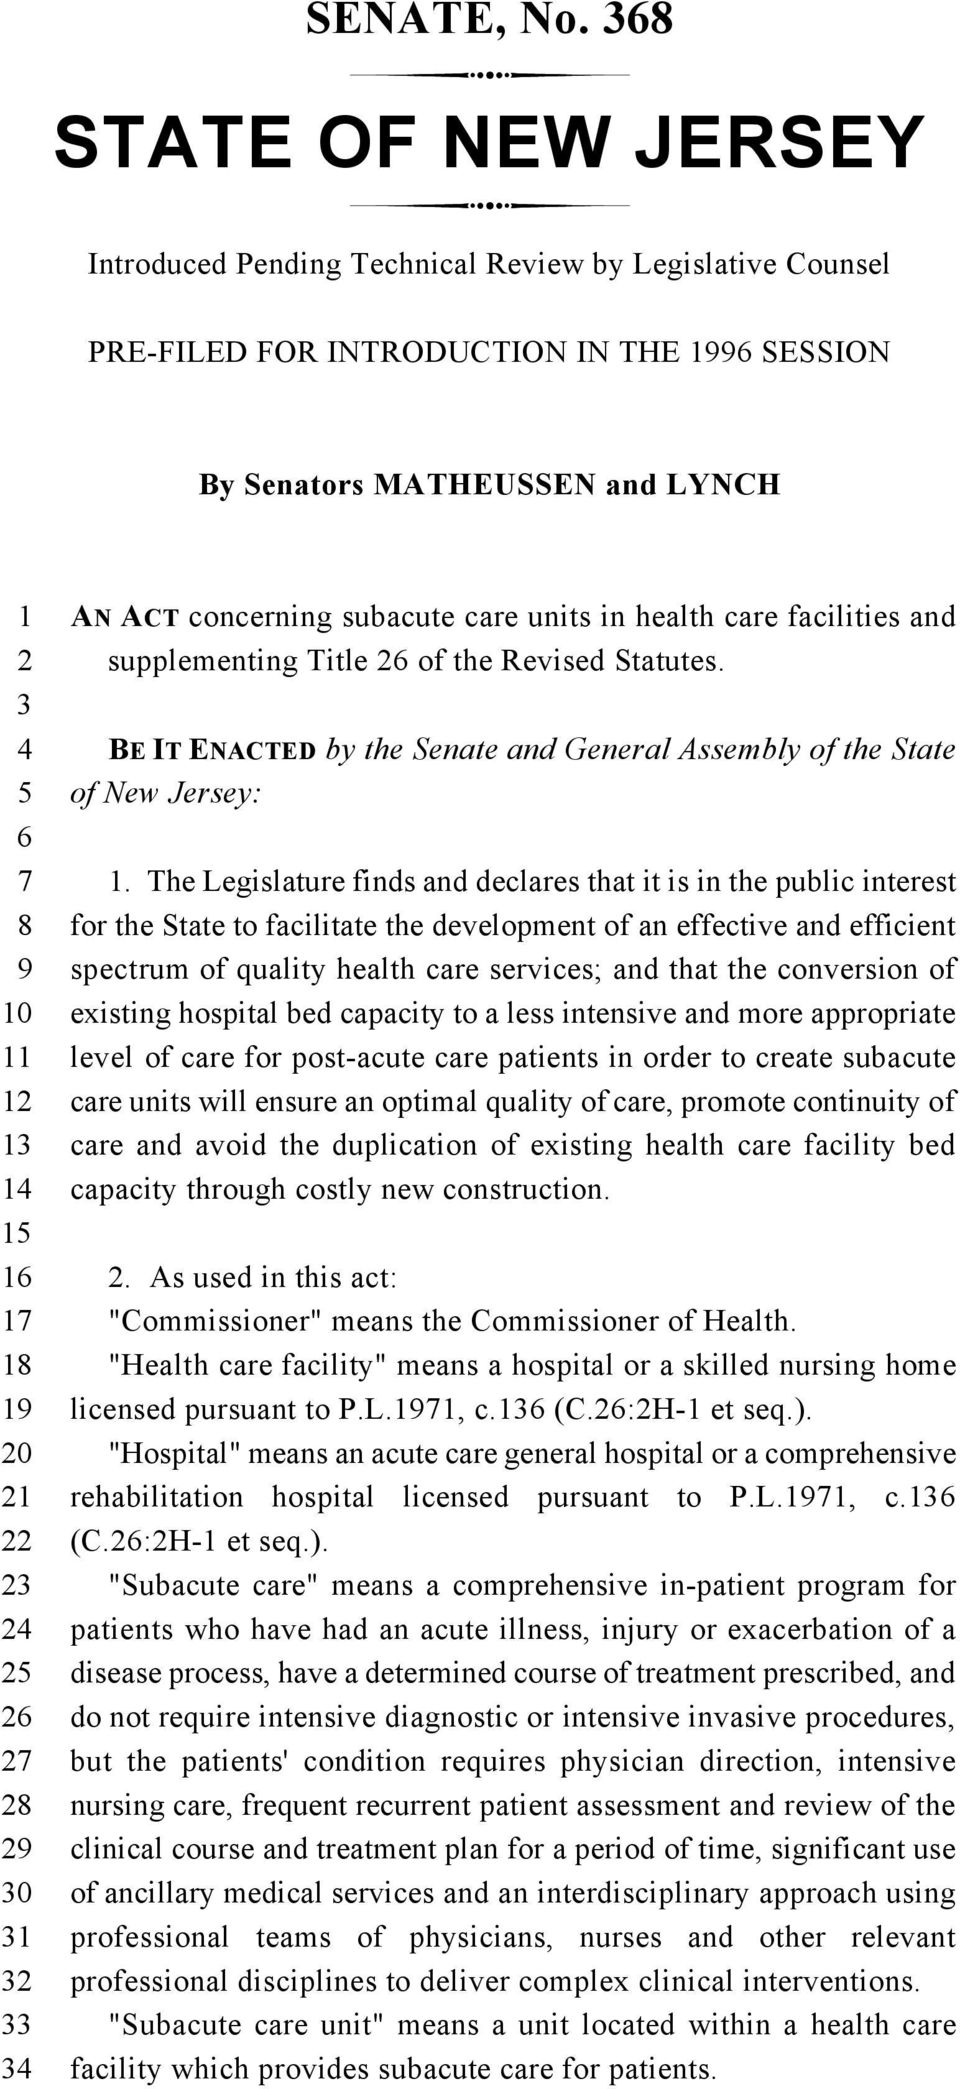 health care facilities and supplementing Title of the Revised Statutes. BE IT ENACTED by the Senate and General Assembly of the State of New Jersey:.